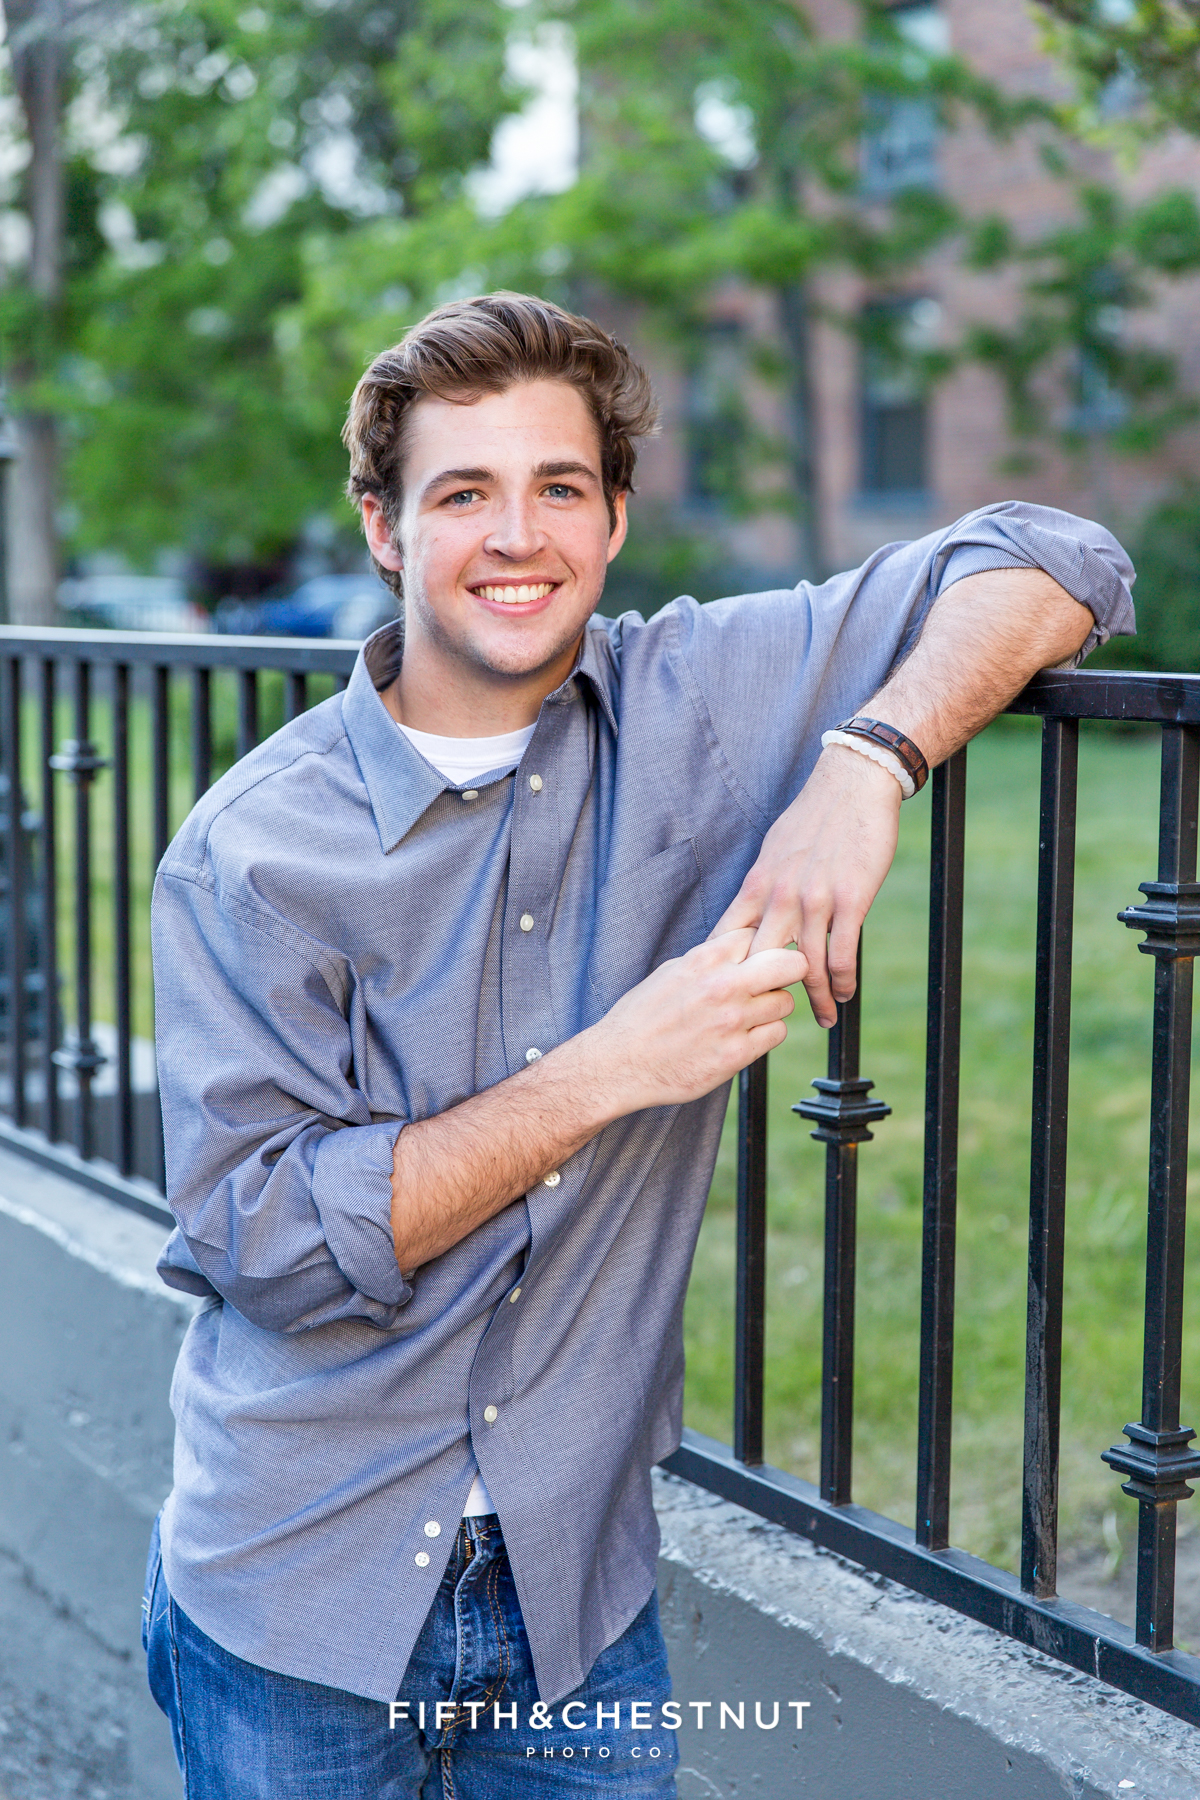 Reno senior portraits of Reno High School Senior Tim H wearing a blue shirt and leaning on an iron fence in the Downtown Reno area